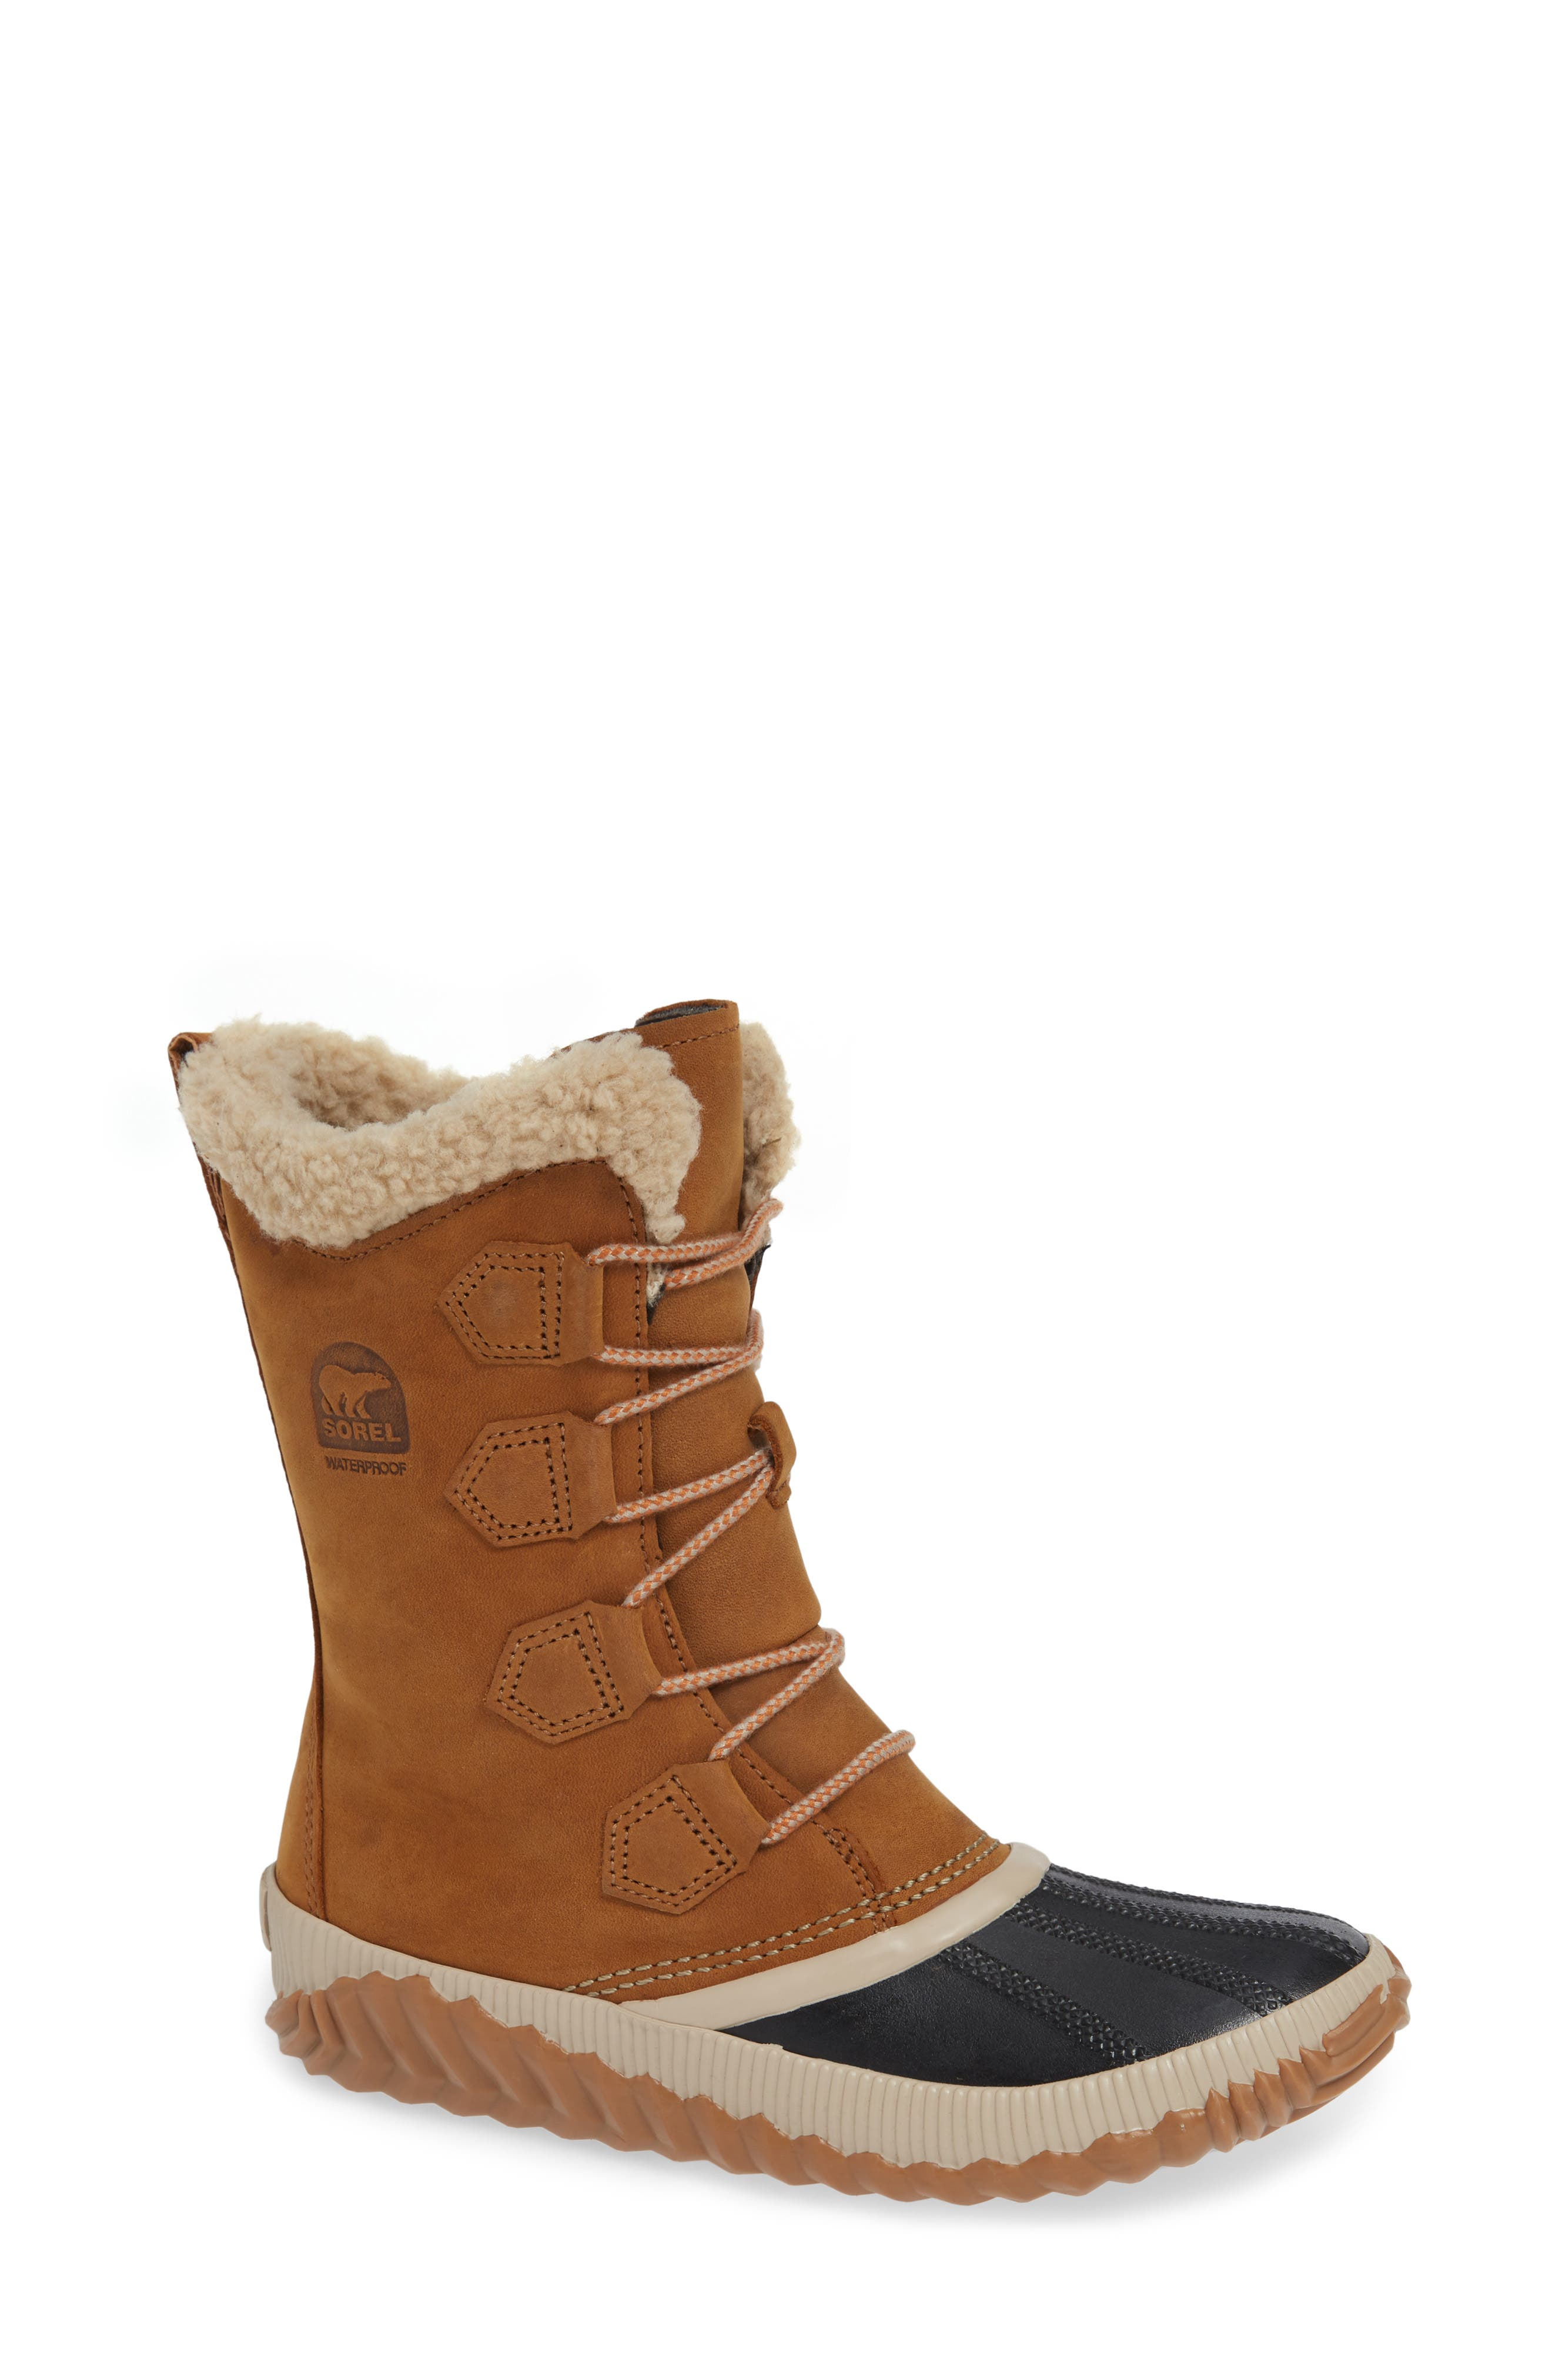 Sorel Out N About Plus Tall Waterproof Boot, Brown